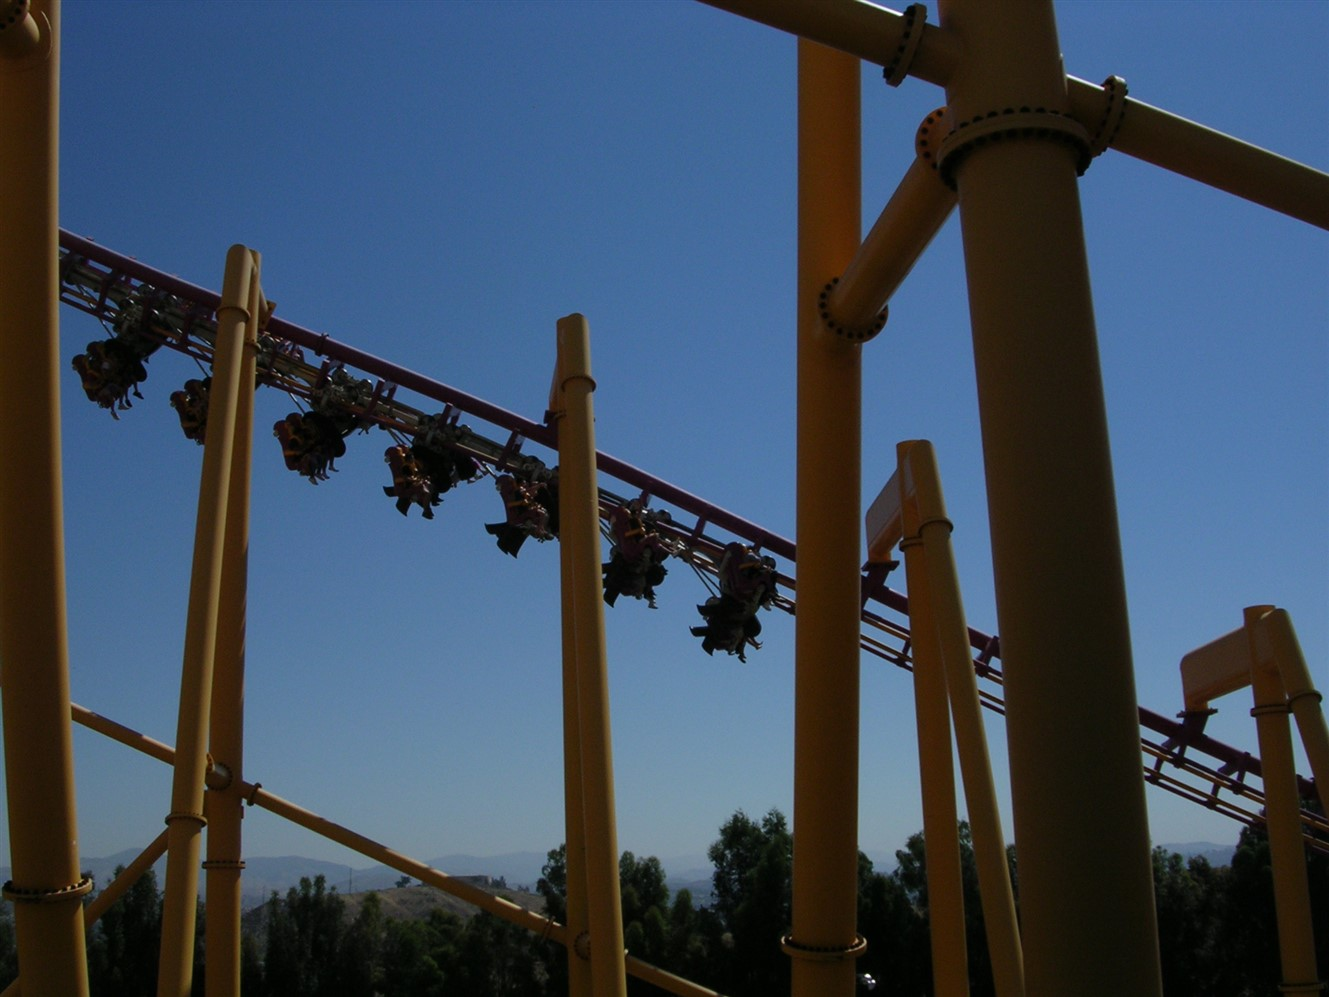 2005 06 30 Magic Mountain California 4.jpg